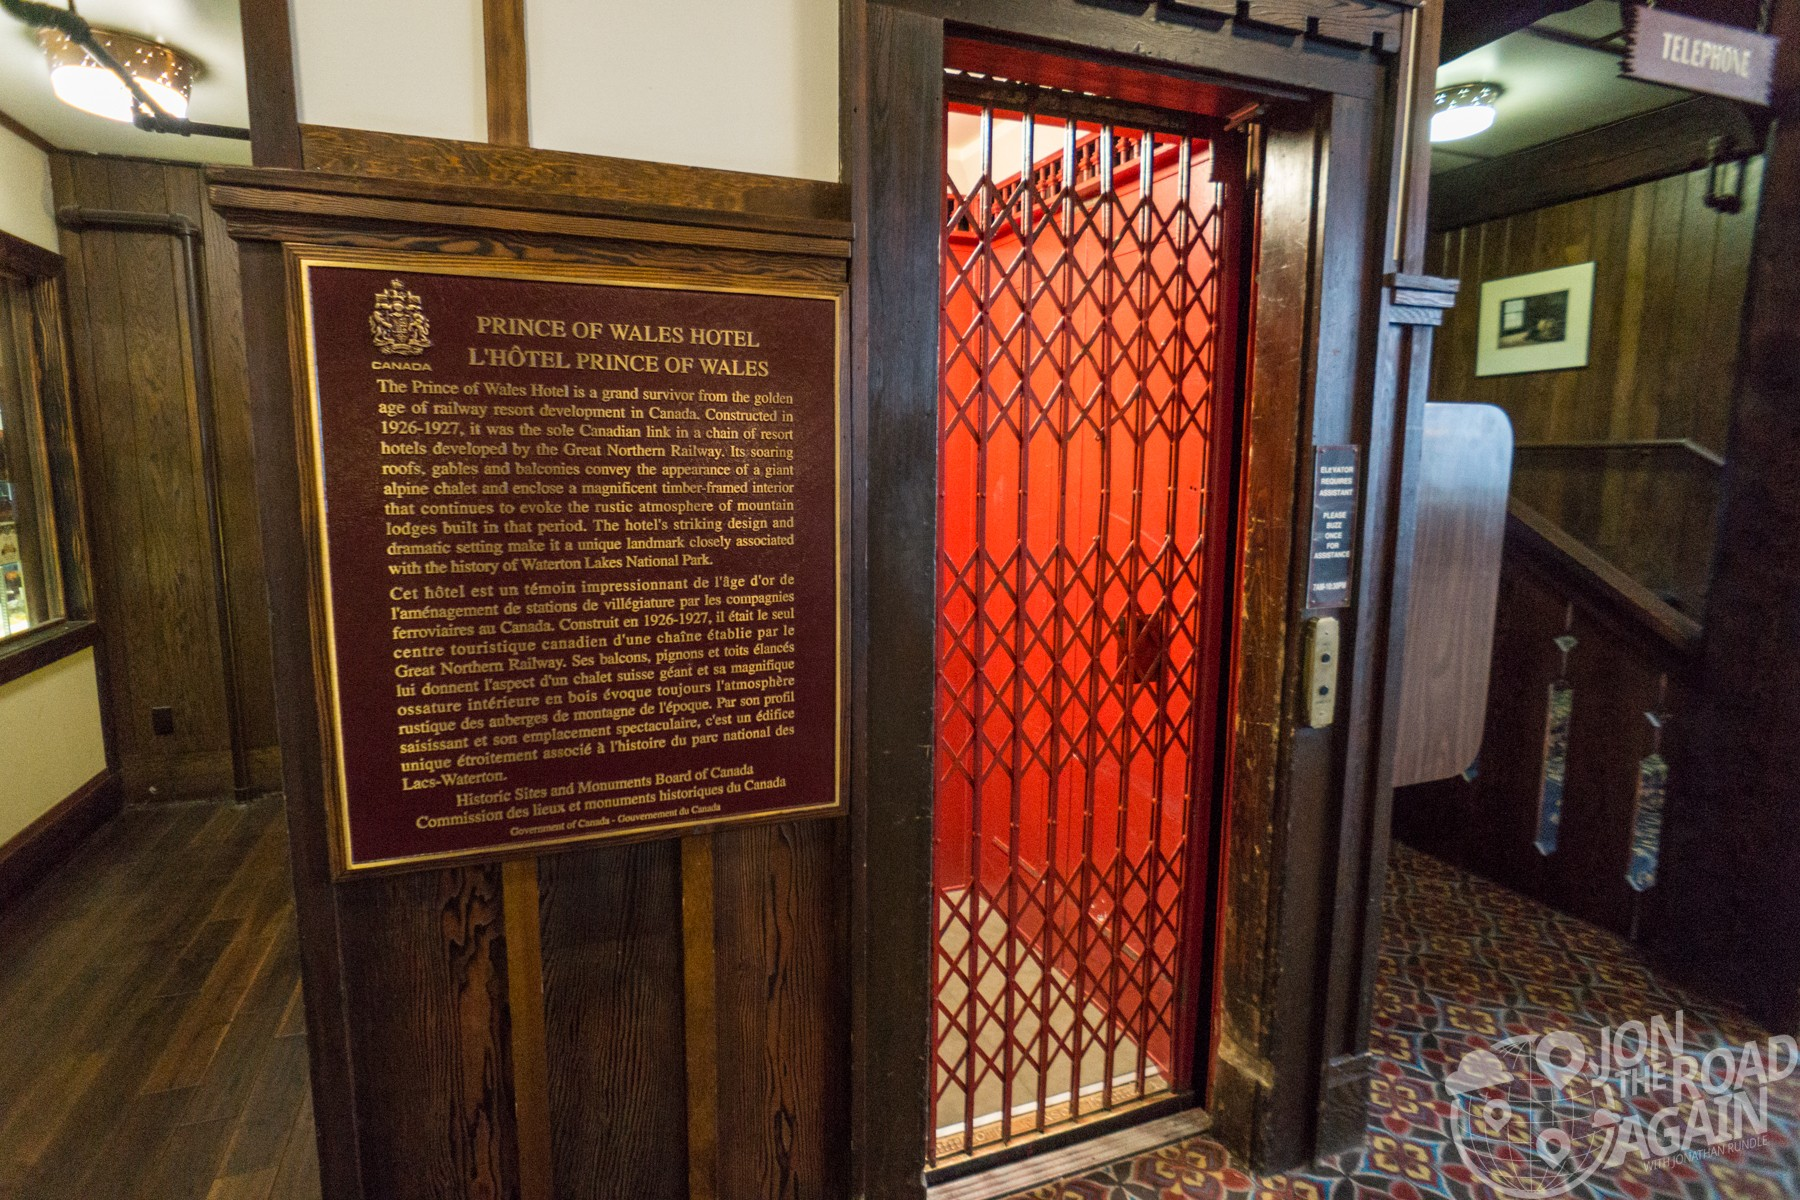 Prince of Wales Hotel Elevator